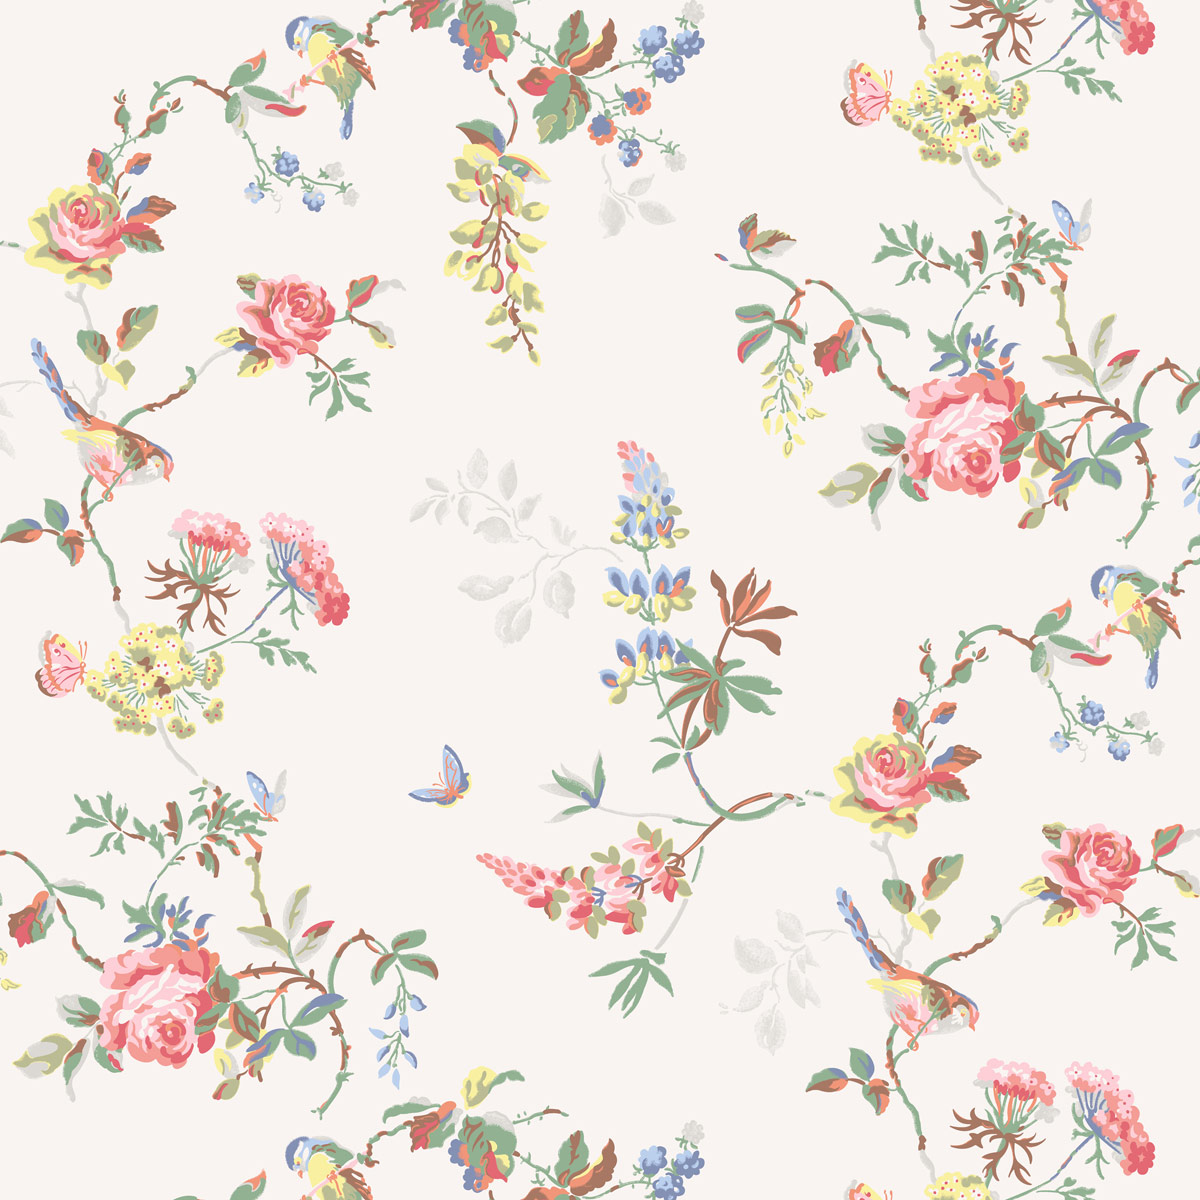 Birds & Roses Furnishing Fabric - White - Cath Kidston roses and birds ...